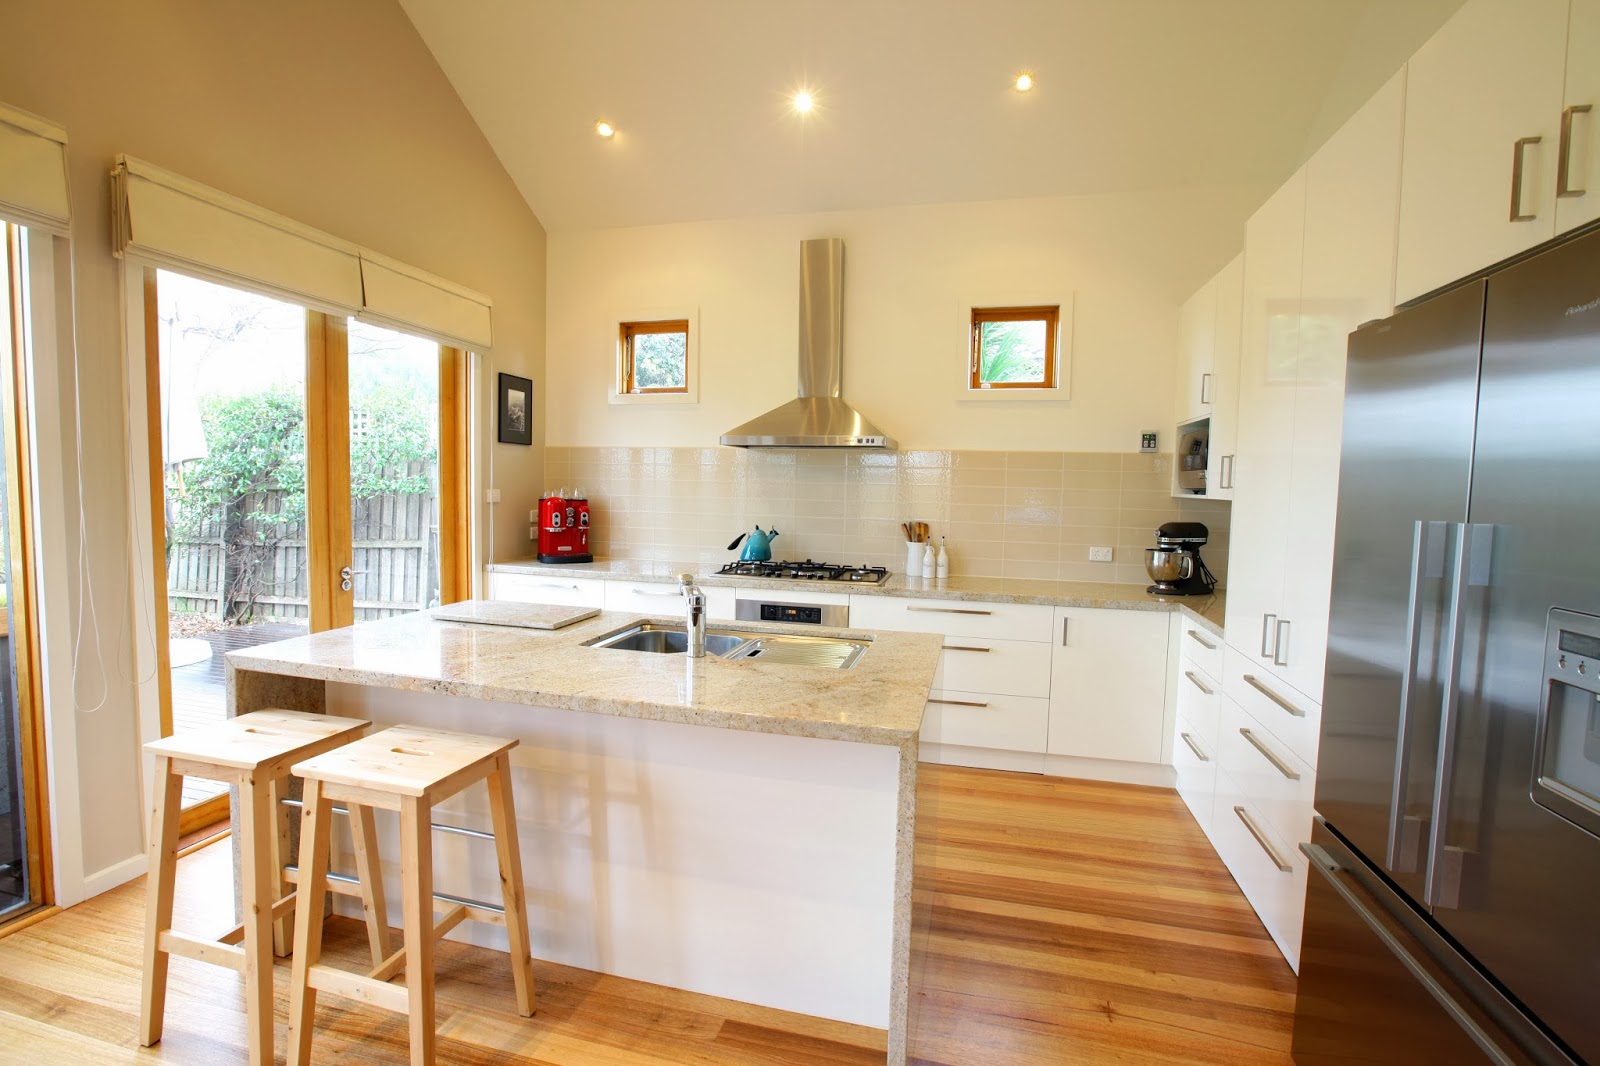 designer kitchens and renovation melbourne blog | kitchen designs